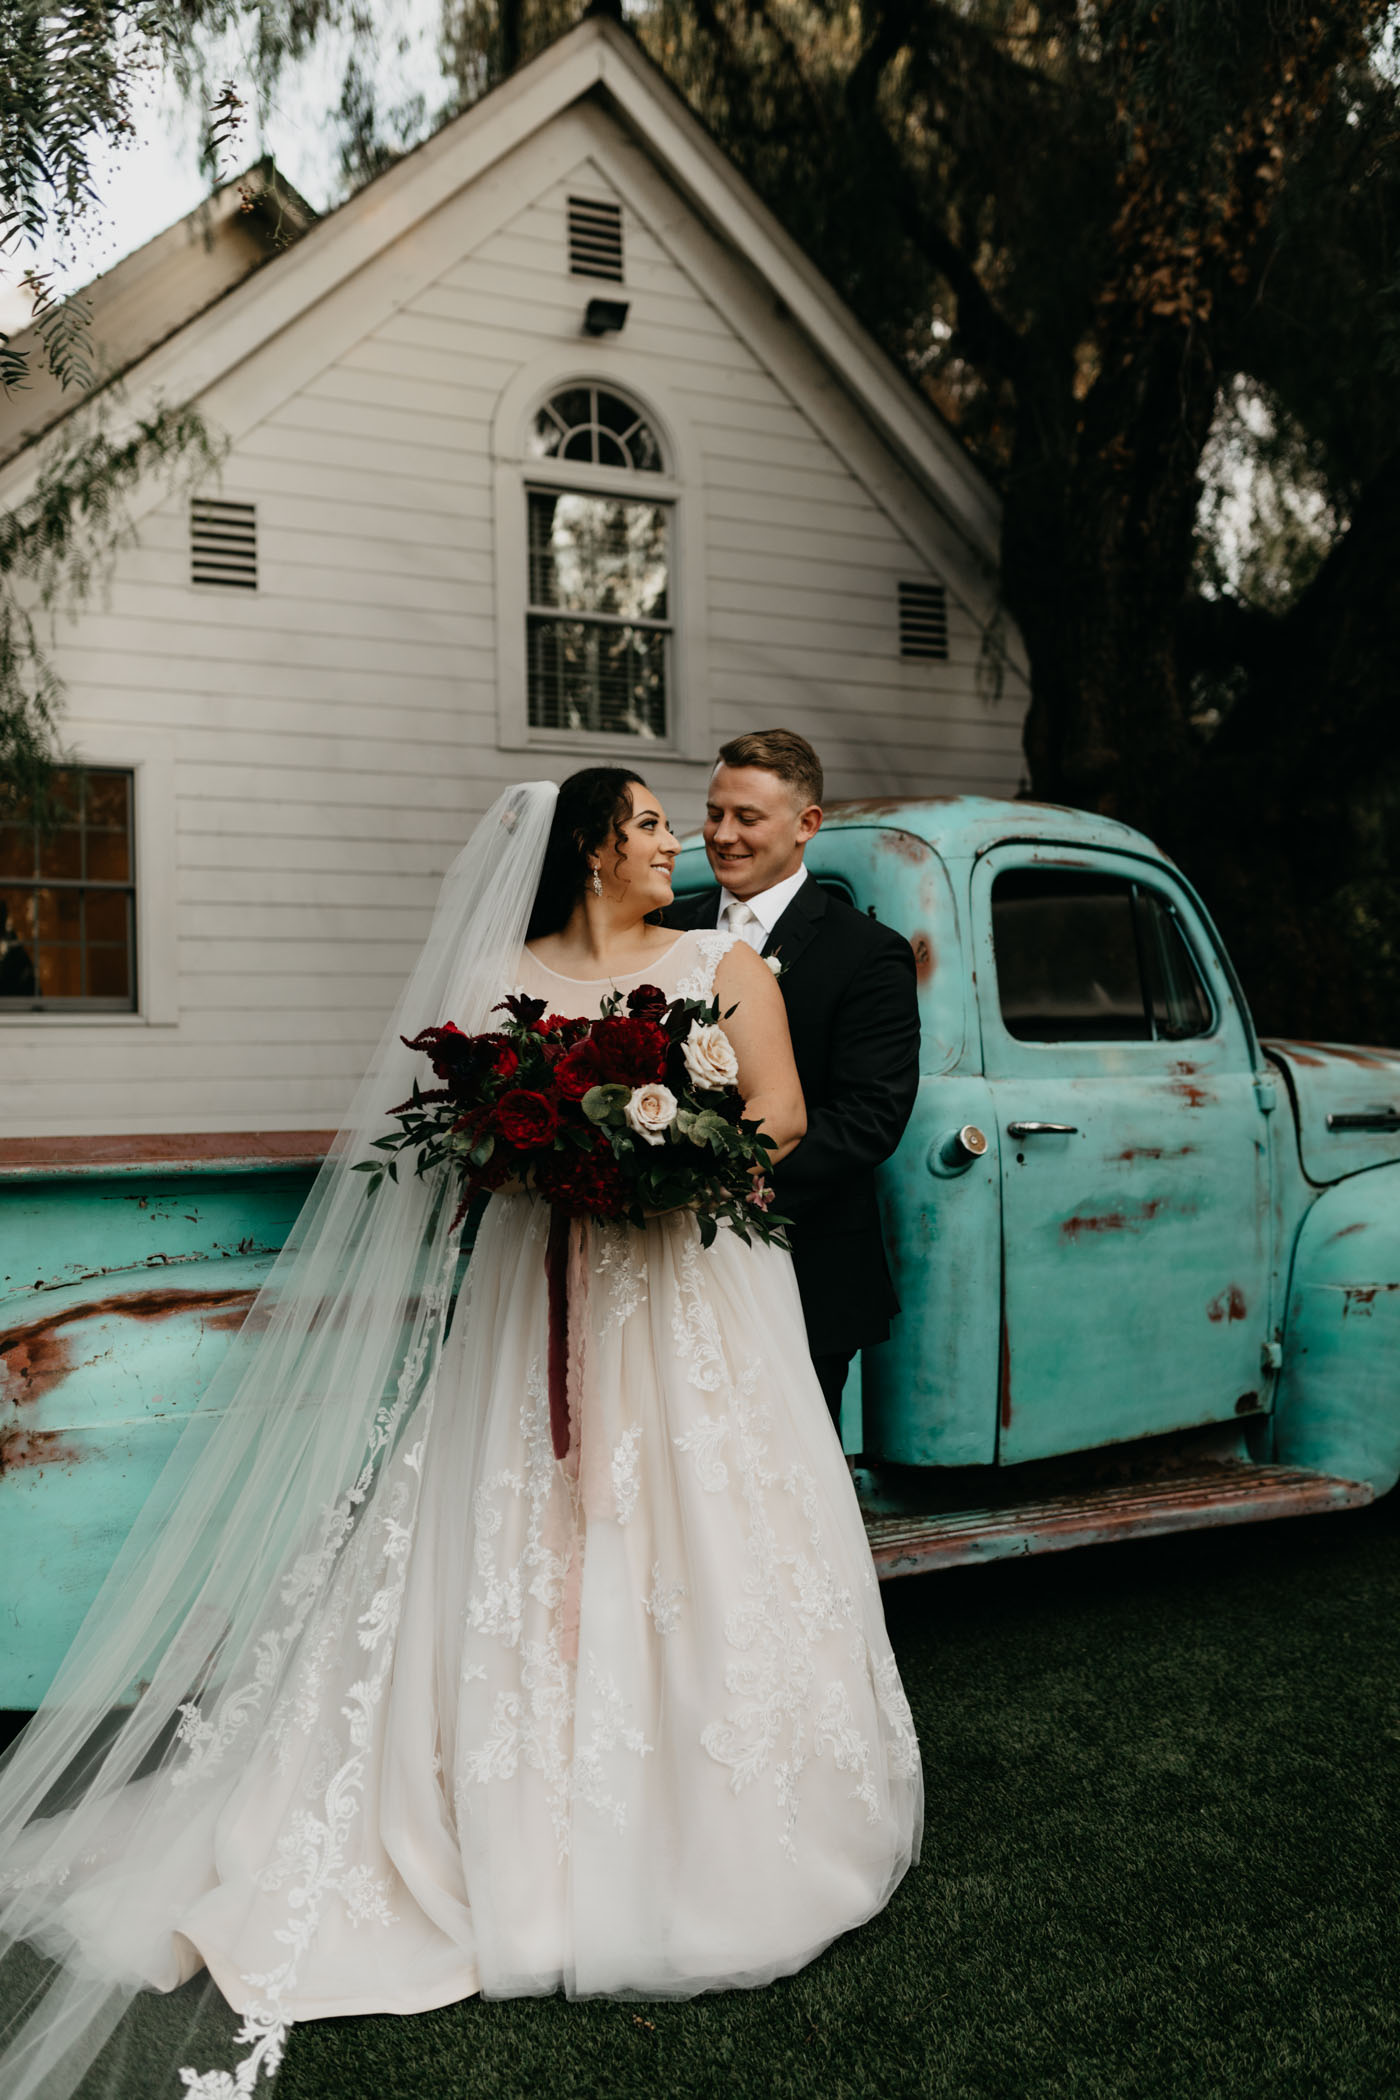 Bride and groom pose in front of vintage pickup at wedding venue